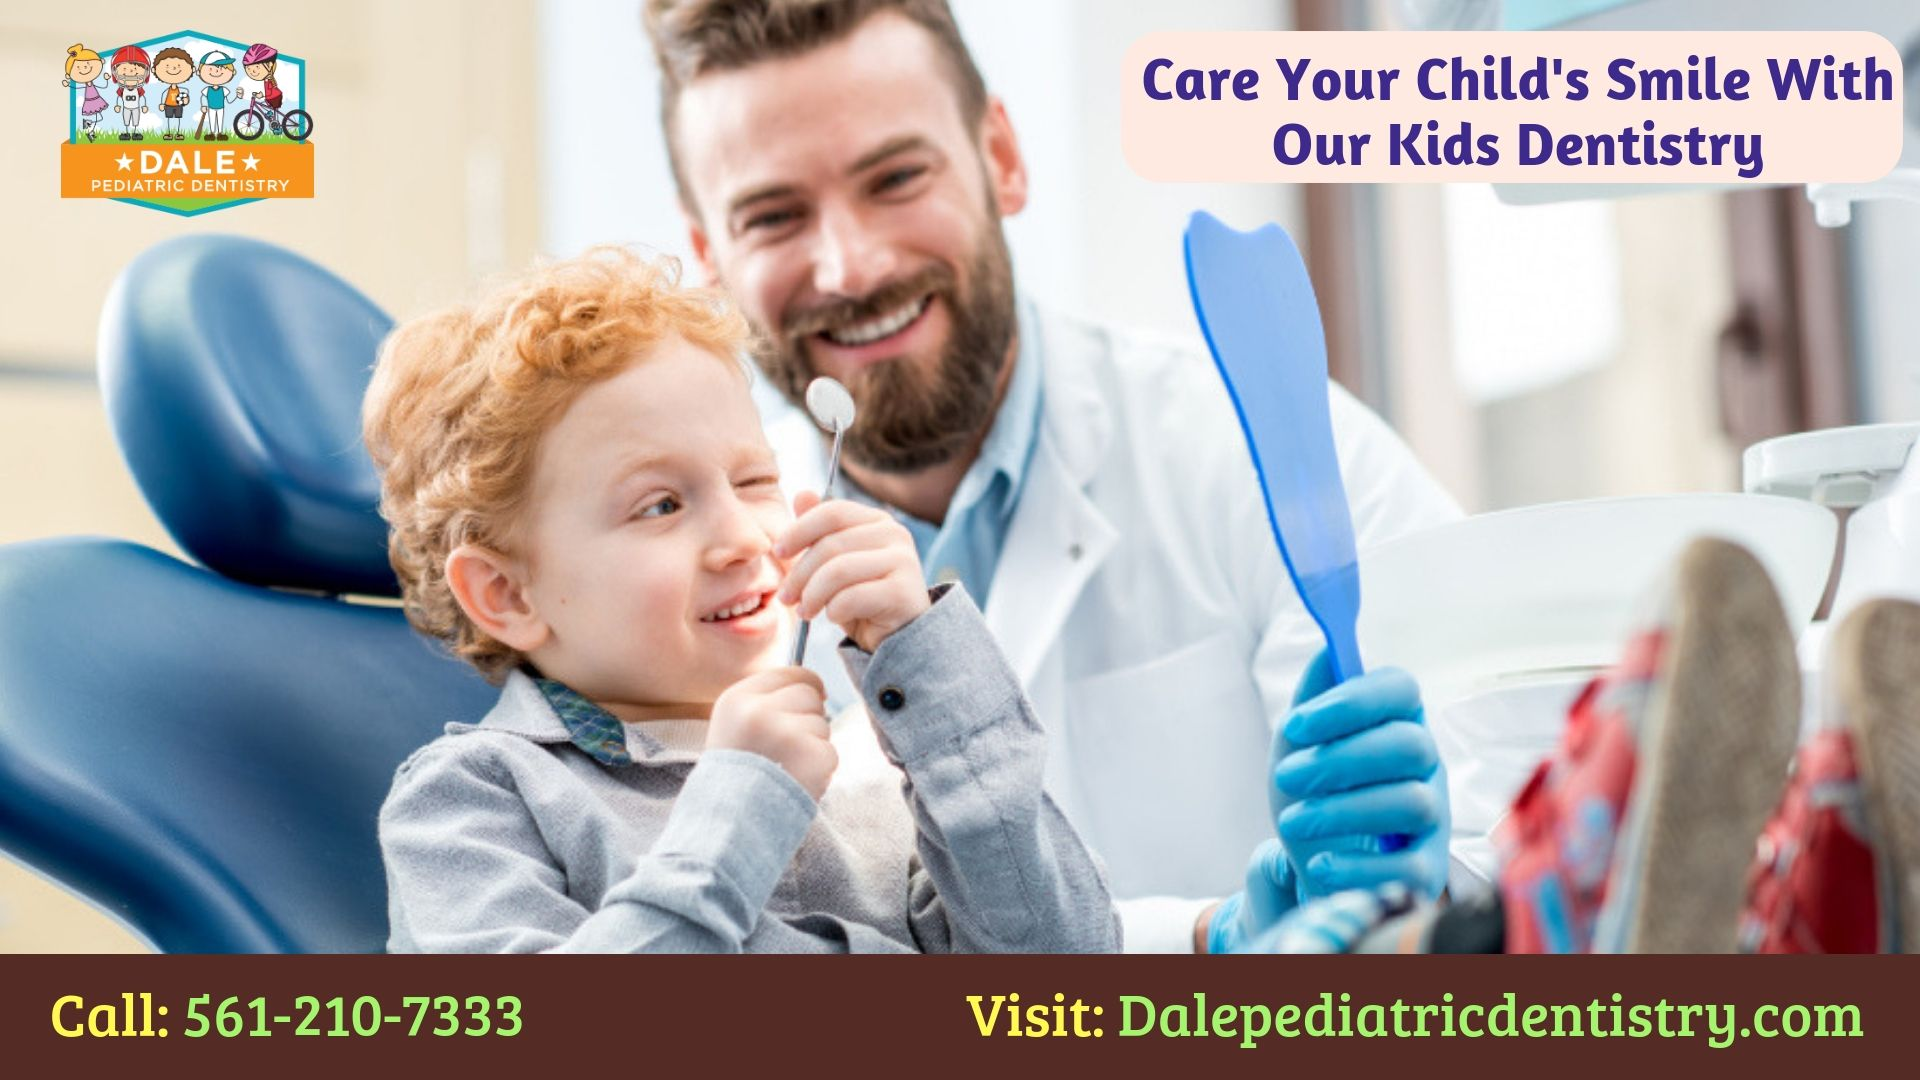 Want to enrich your child's oral health with responsive